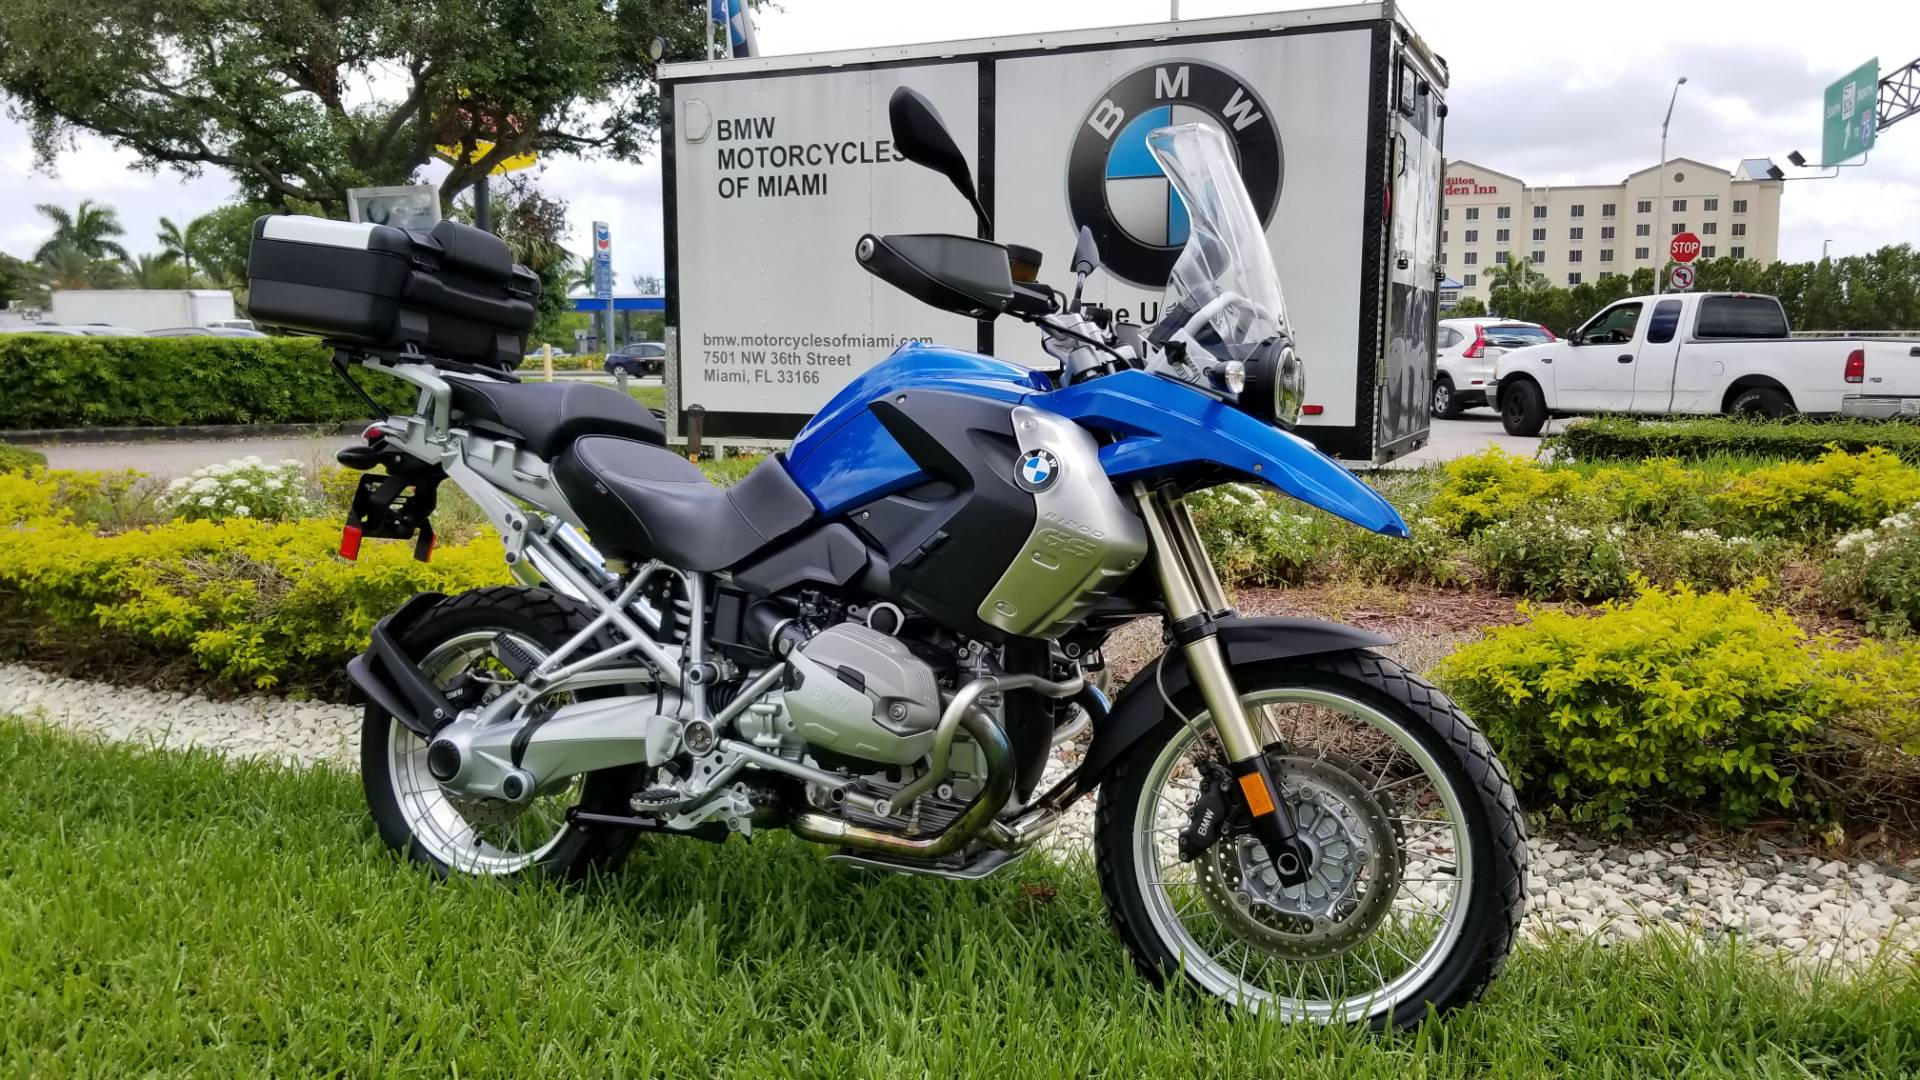 Used 2012 BMW R 1200 GS For Sale, BMW R 1200GS For Sale, BMW Motorcycle r1200GS, BMW R1200GS, BMW, GS, DUAL. - Photo 19